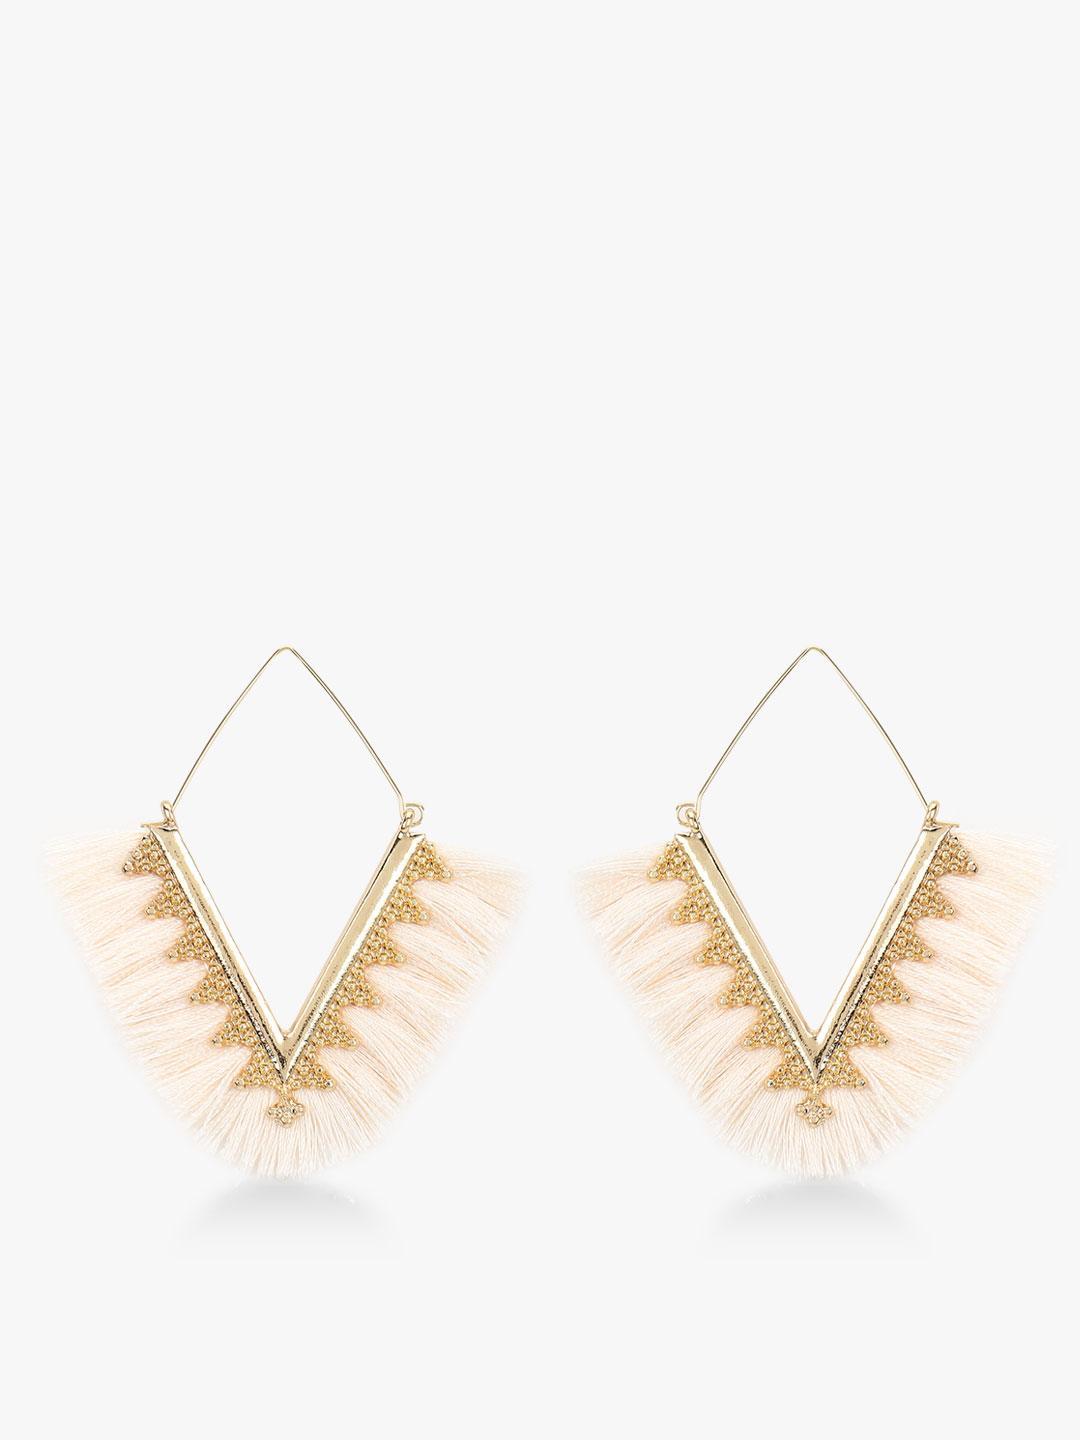 Style Fiesta White Triangular Tassel Drop Earrings 1